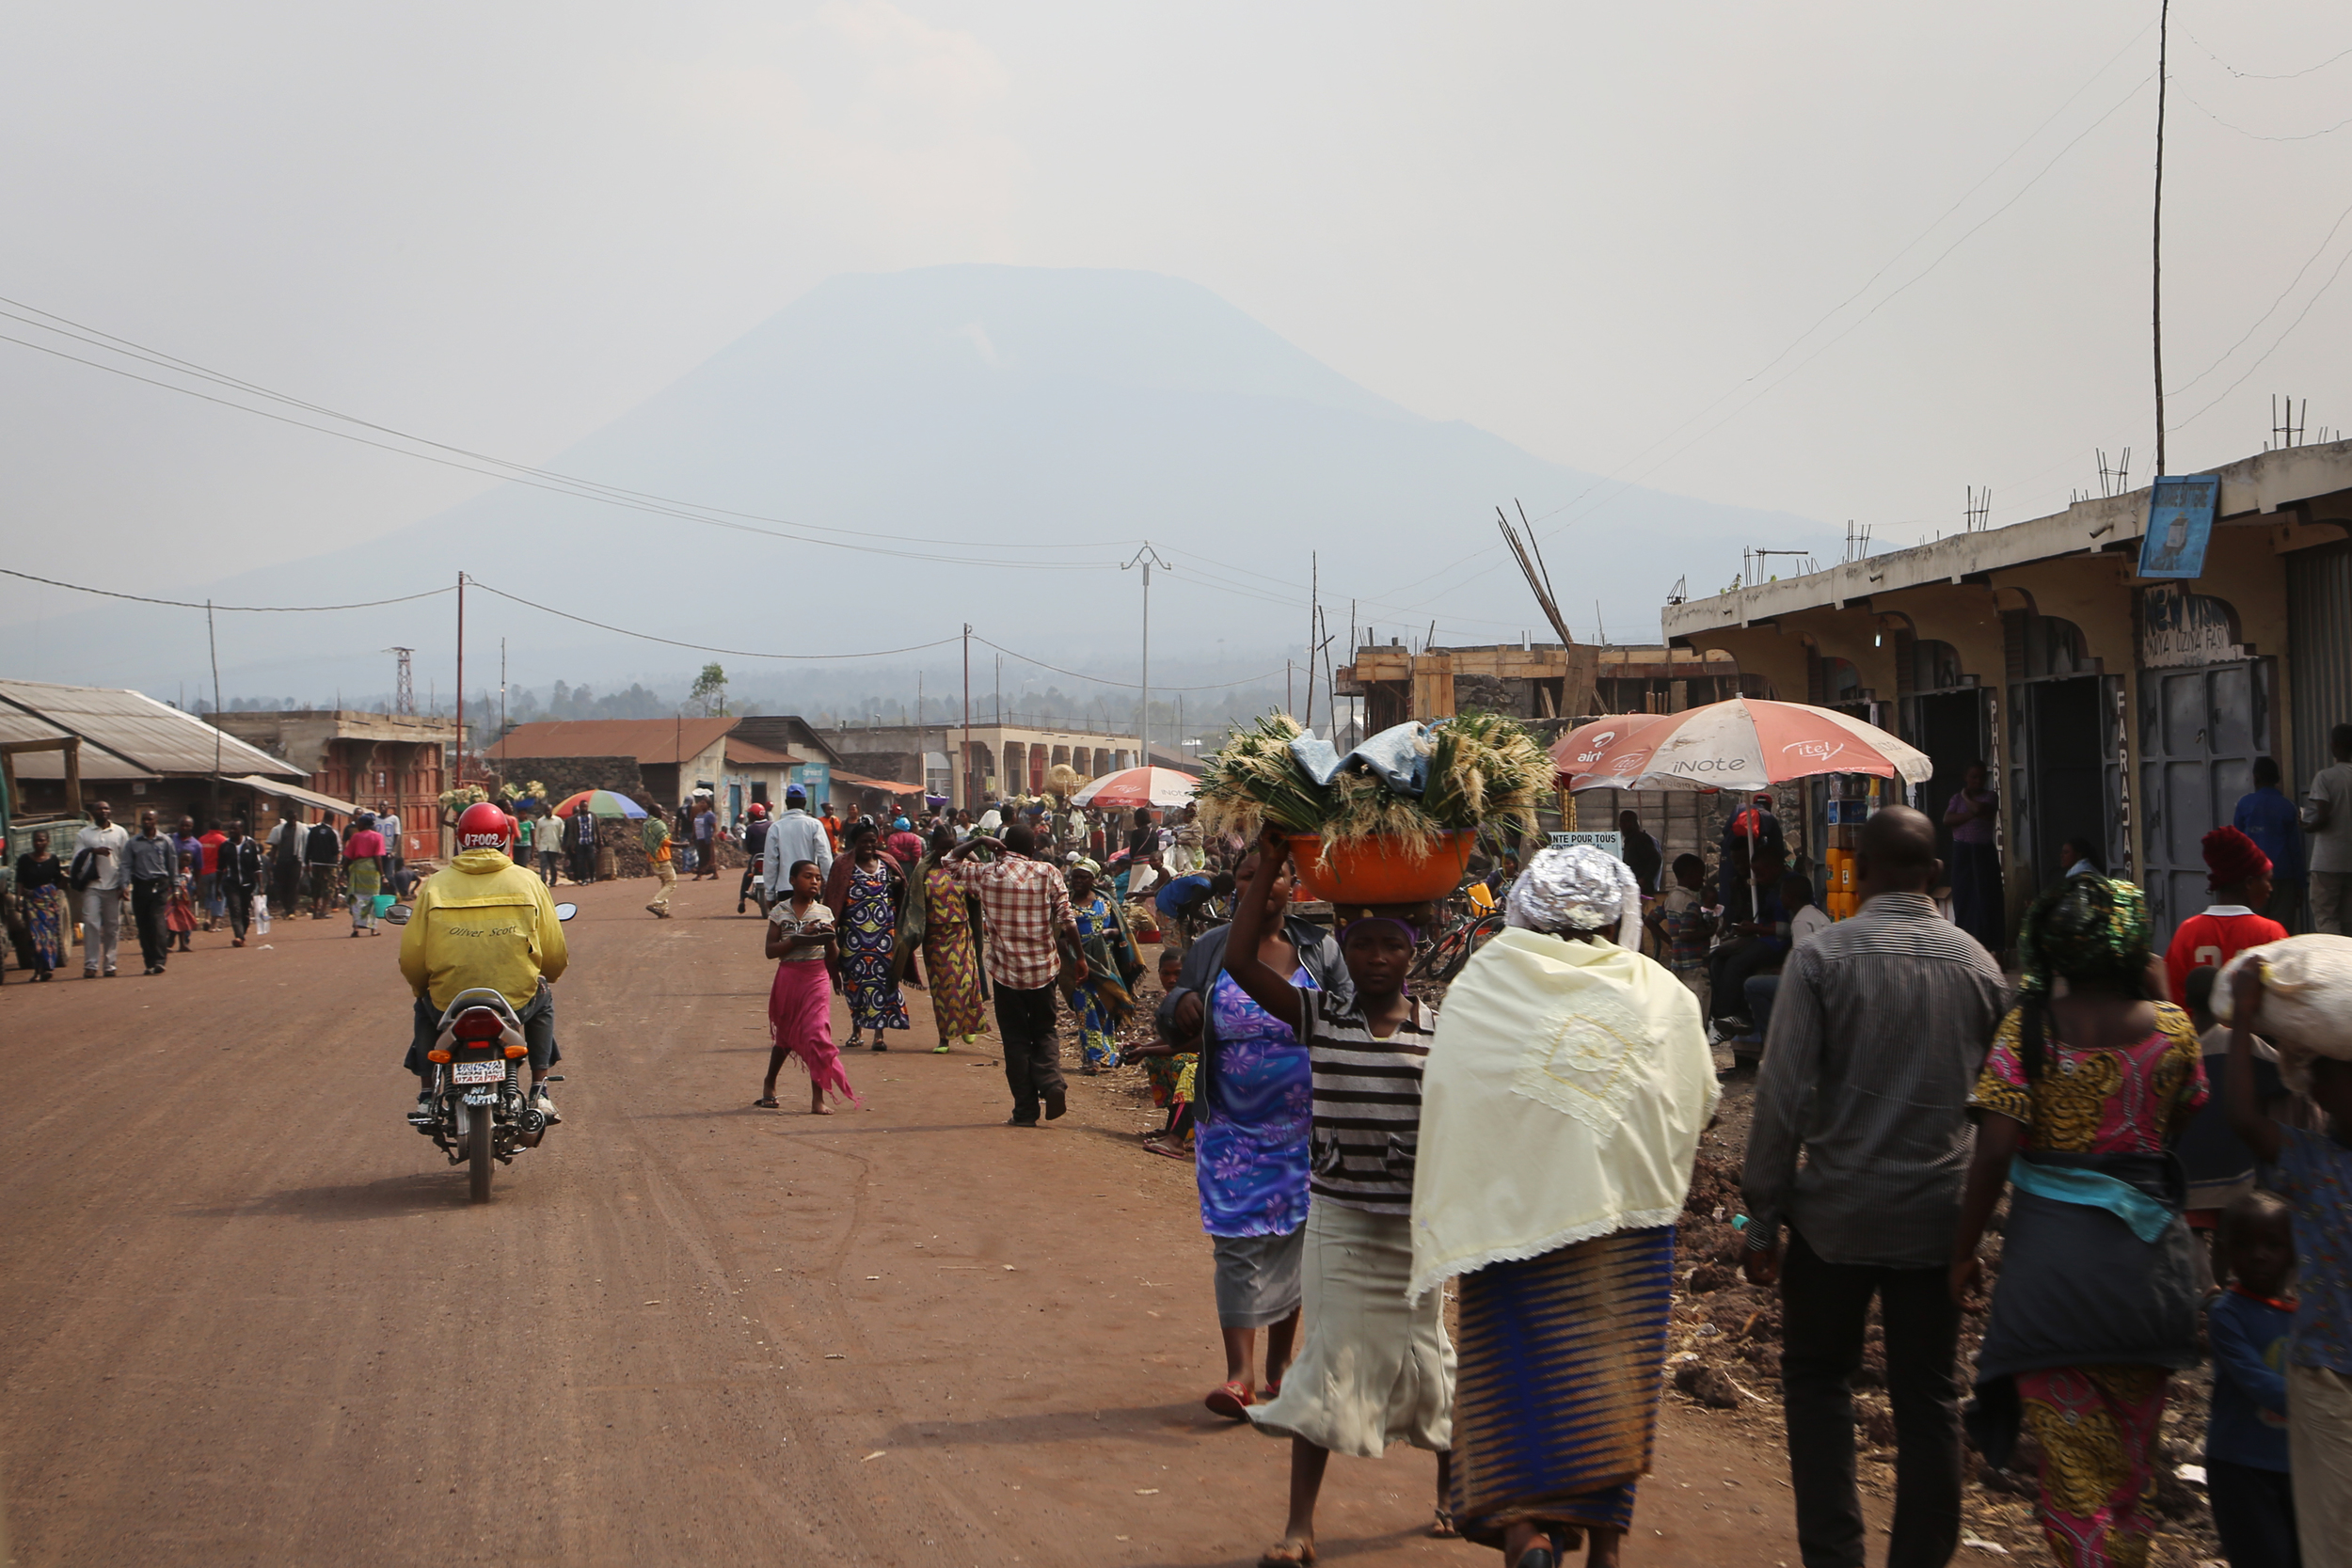 The streets of Goma with Nyarigongo Volcano, looming above the city